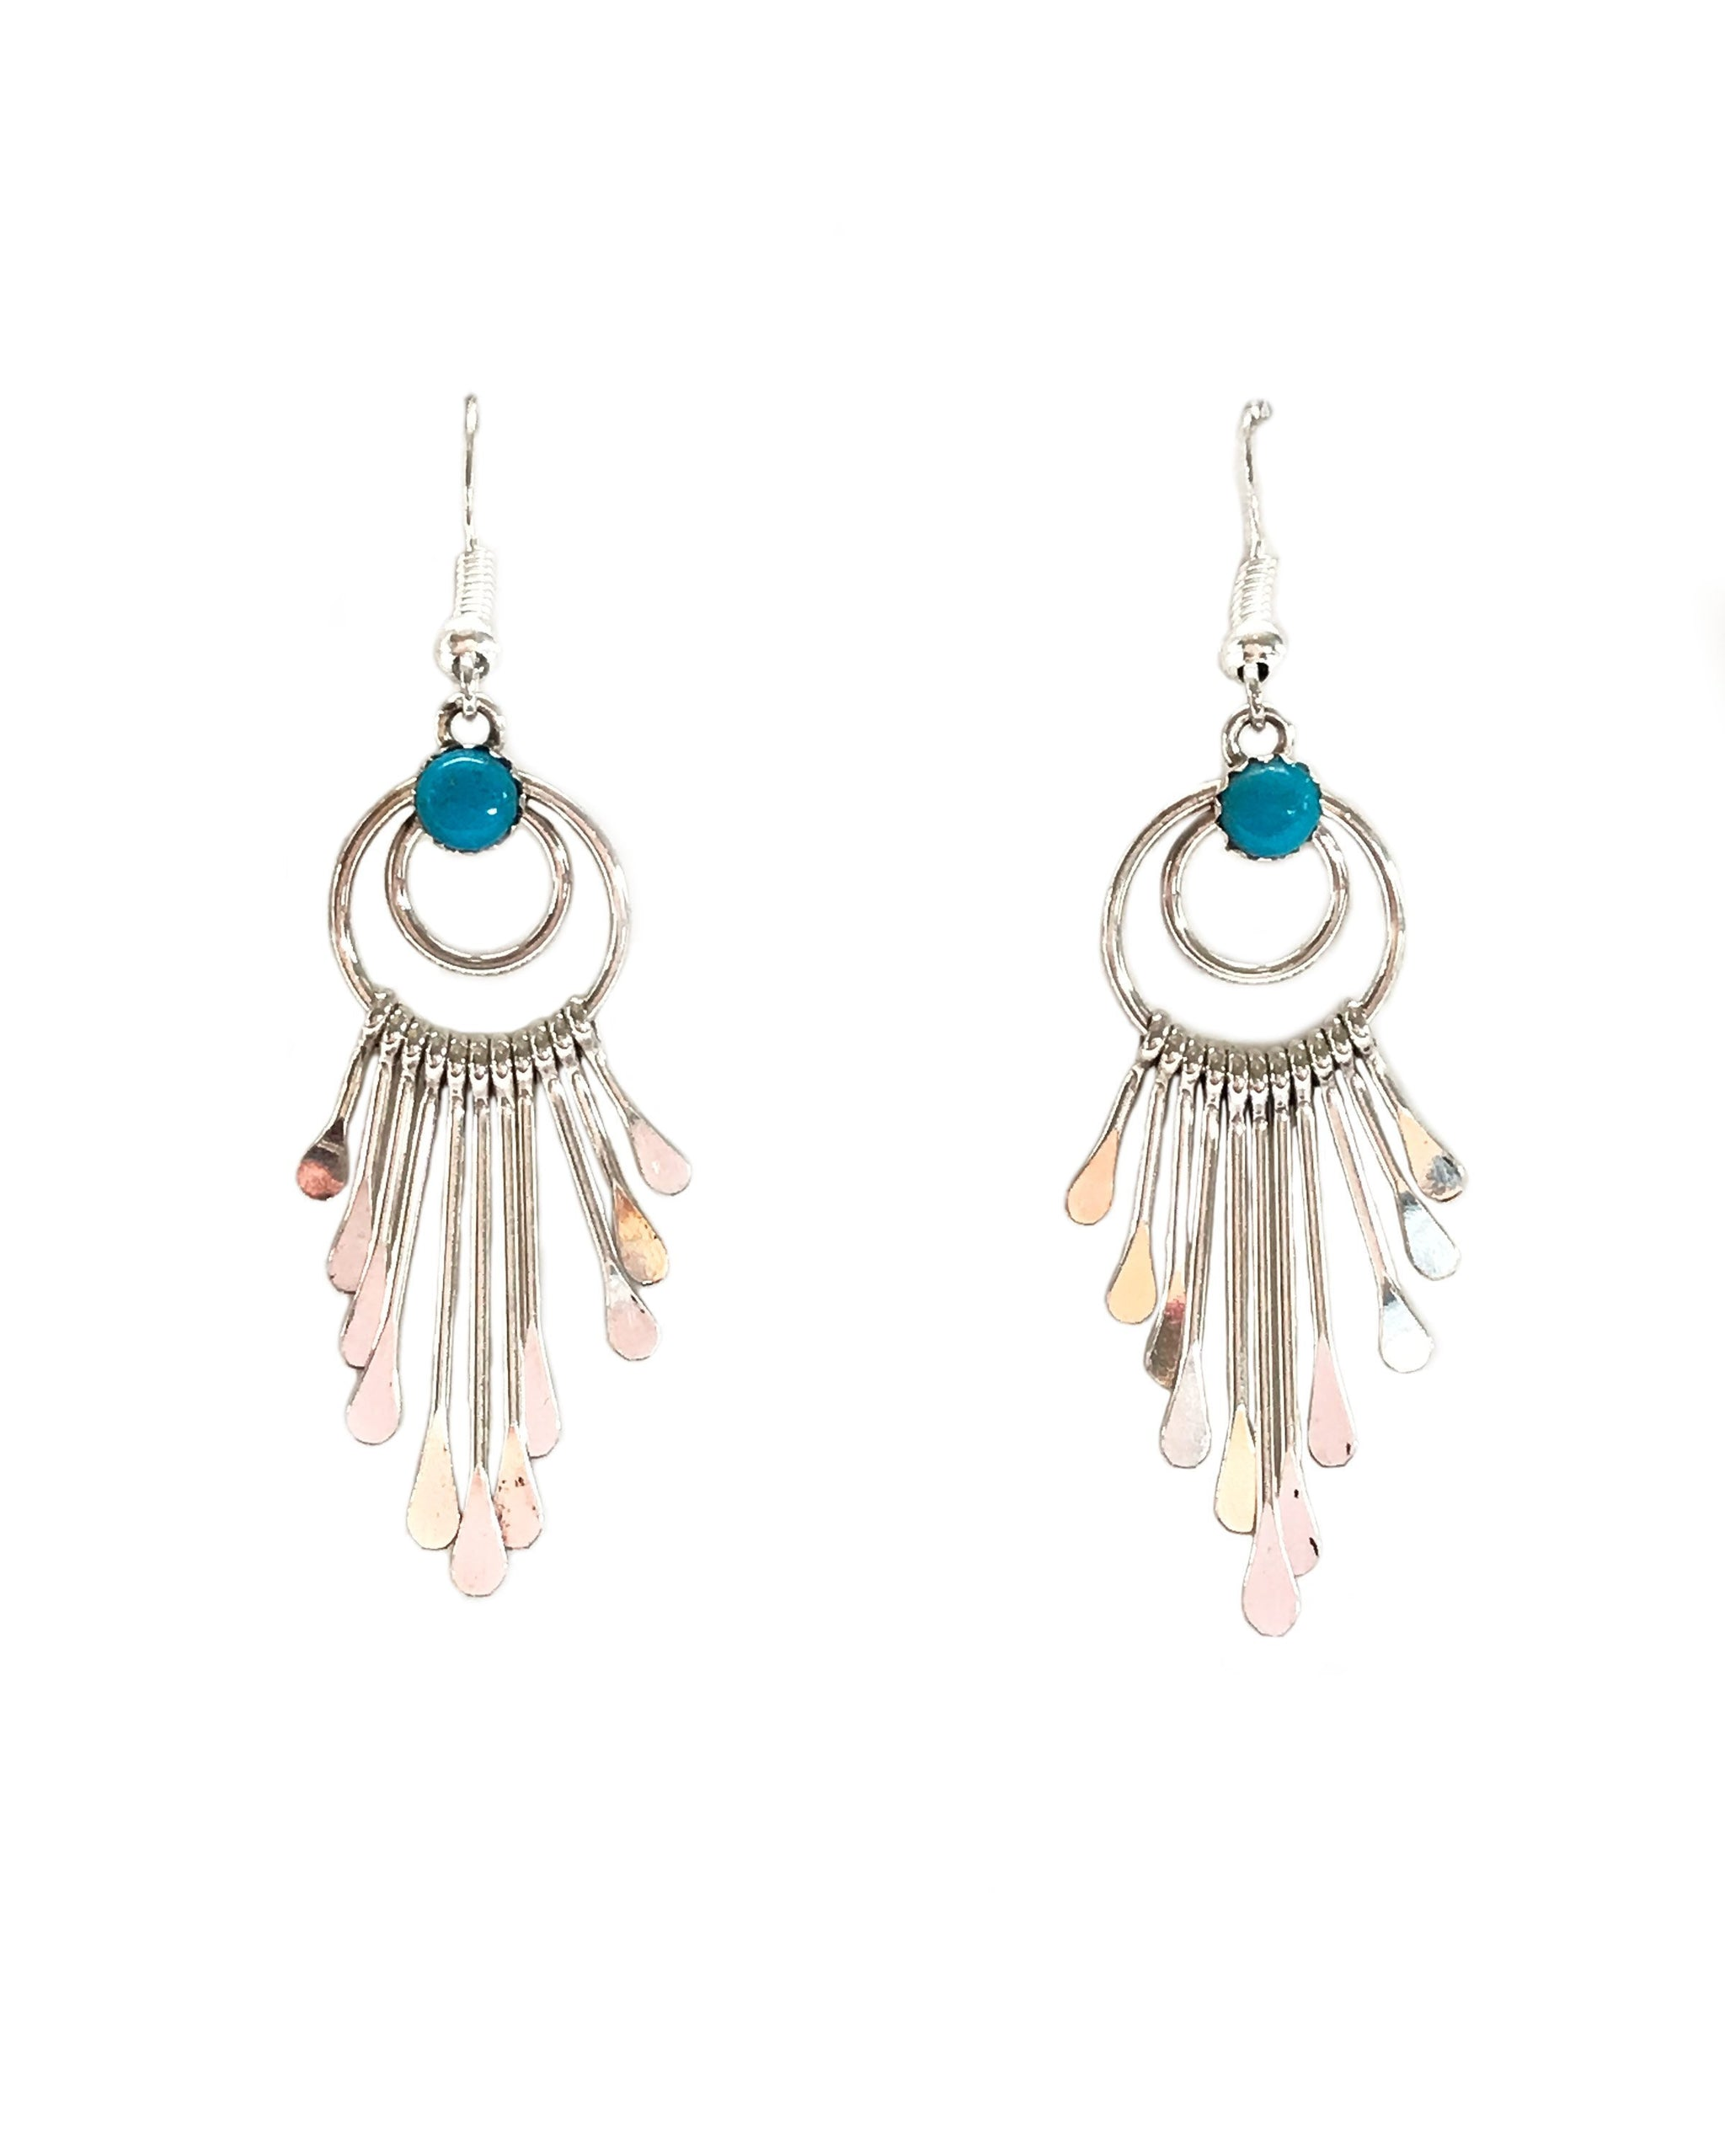 TURQUOISE LUNA EARRINGS - TURQUOISE + TOBACCO